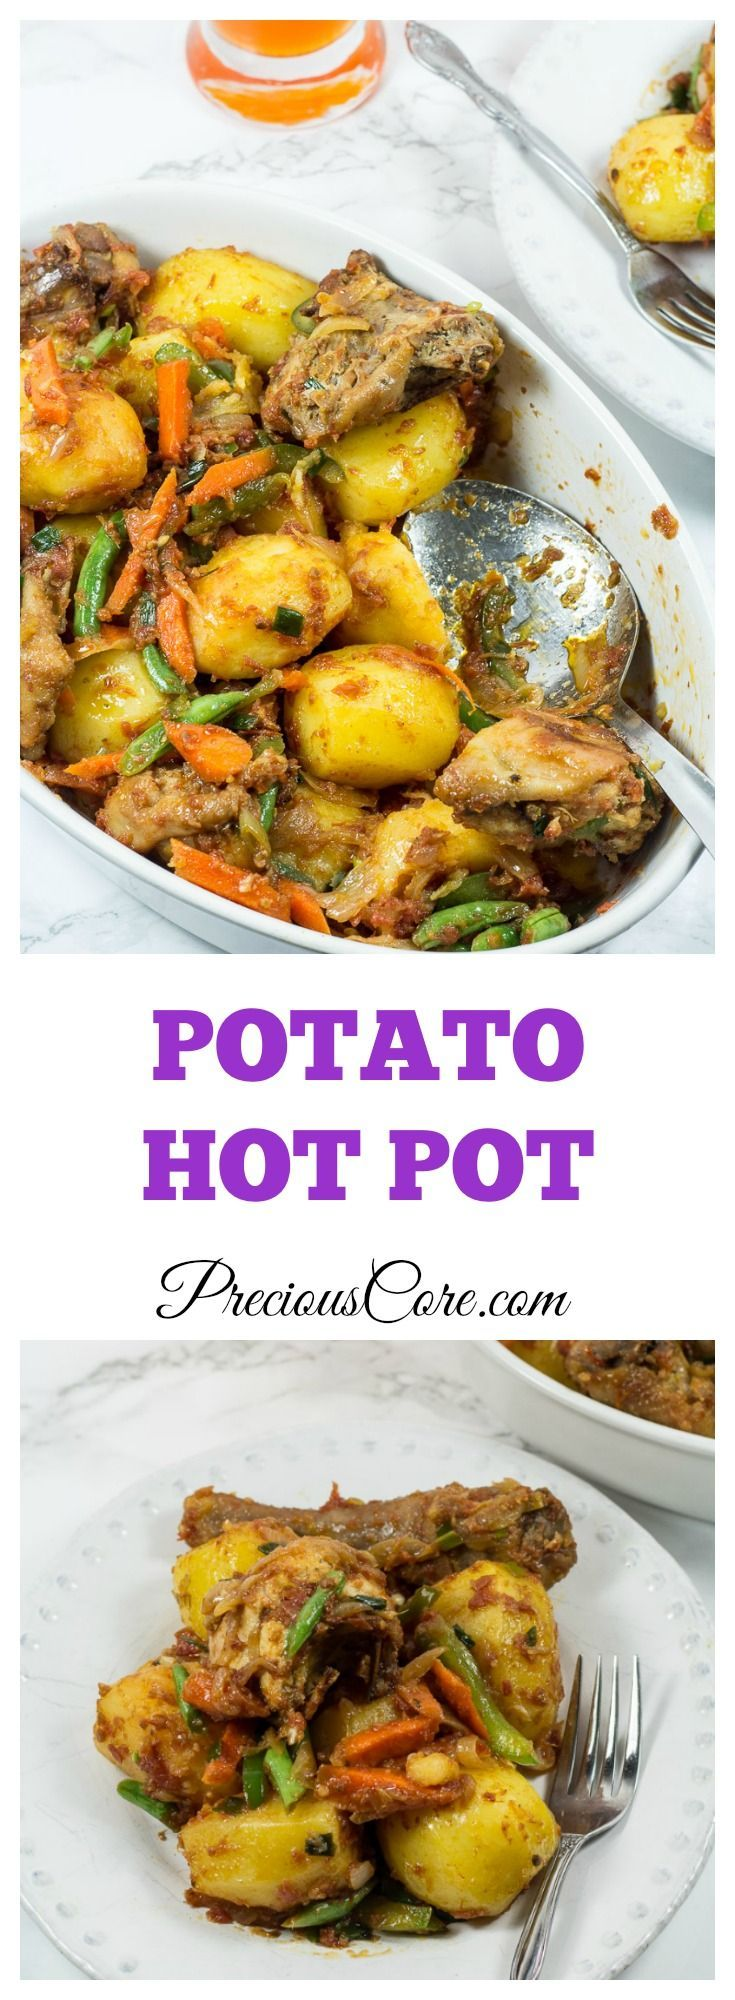 2398 best african food recipes images on pinterest african potato hot pot entree recipessweets recipespotato dinnerblack foodafrican forumfinder Gallery